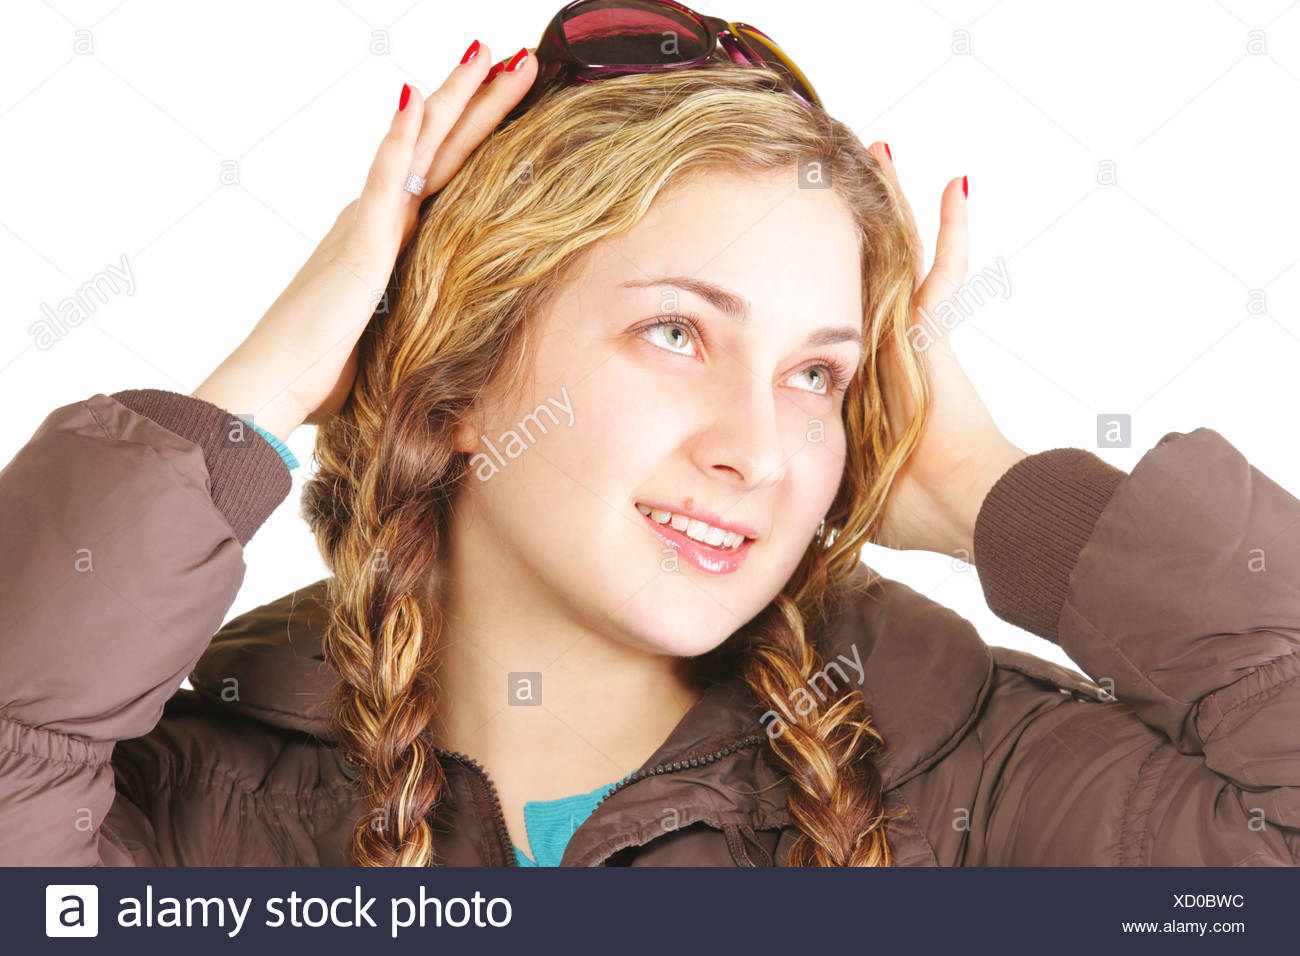 Woman with plaits looking up - Stock Image